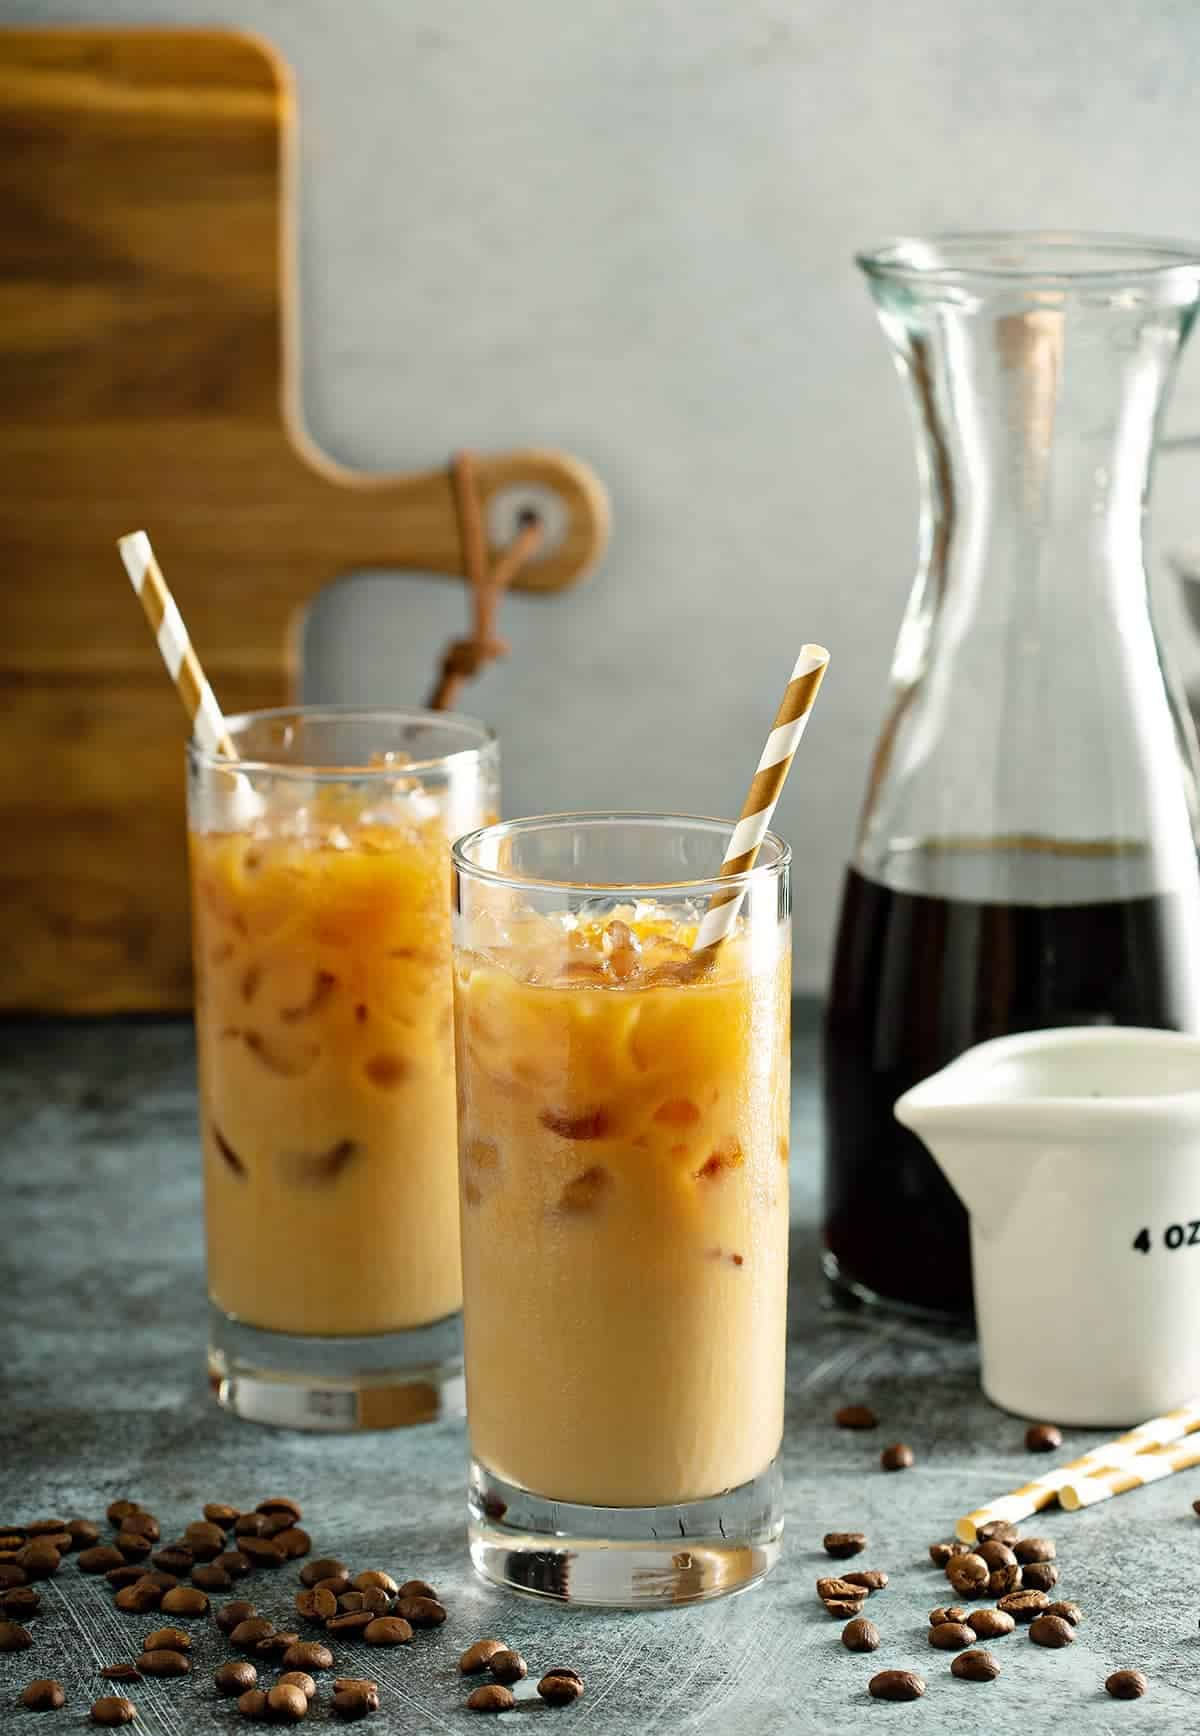 Glasses of Mixed Iced Latte Coffees with carafe and golden straws in the beverages